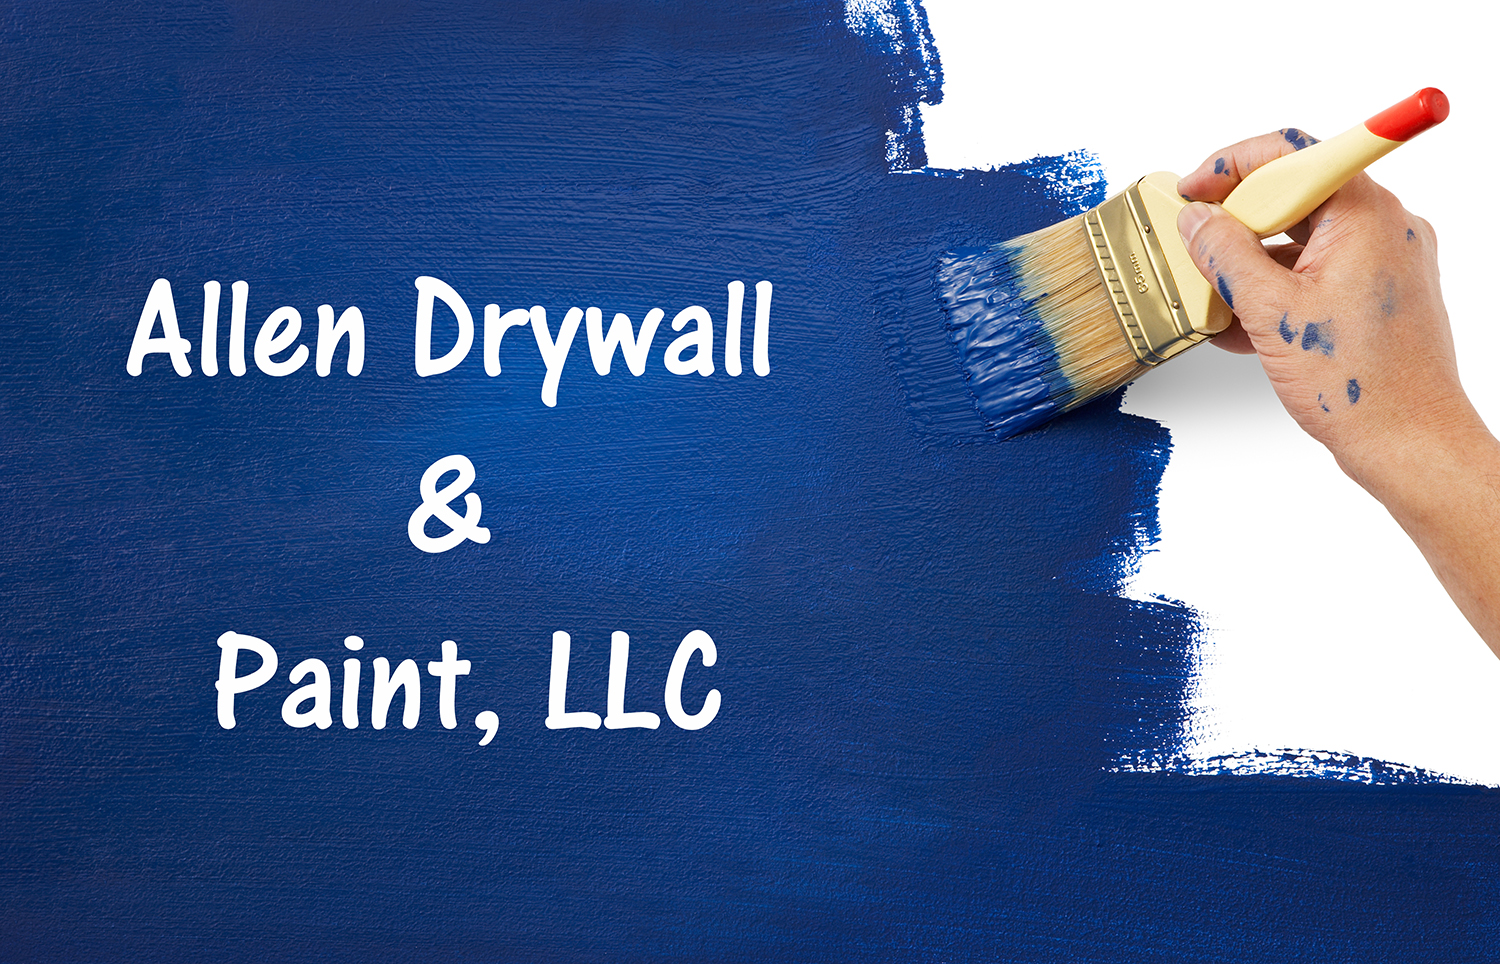 Allen Drywall & Paint, LLC